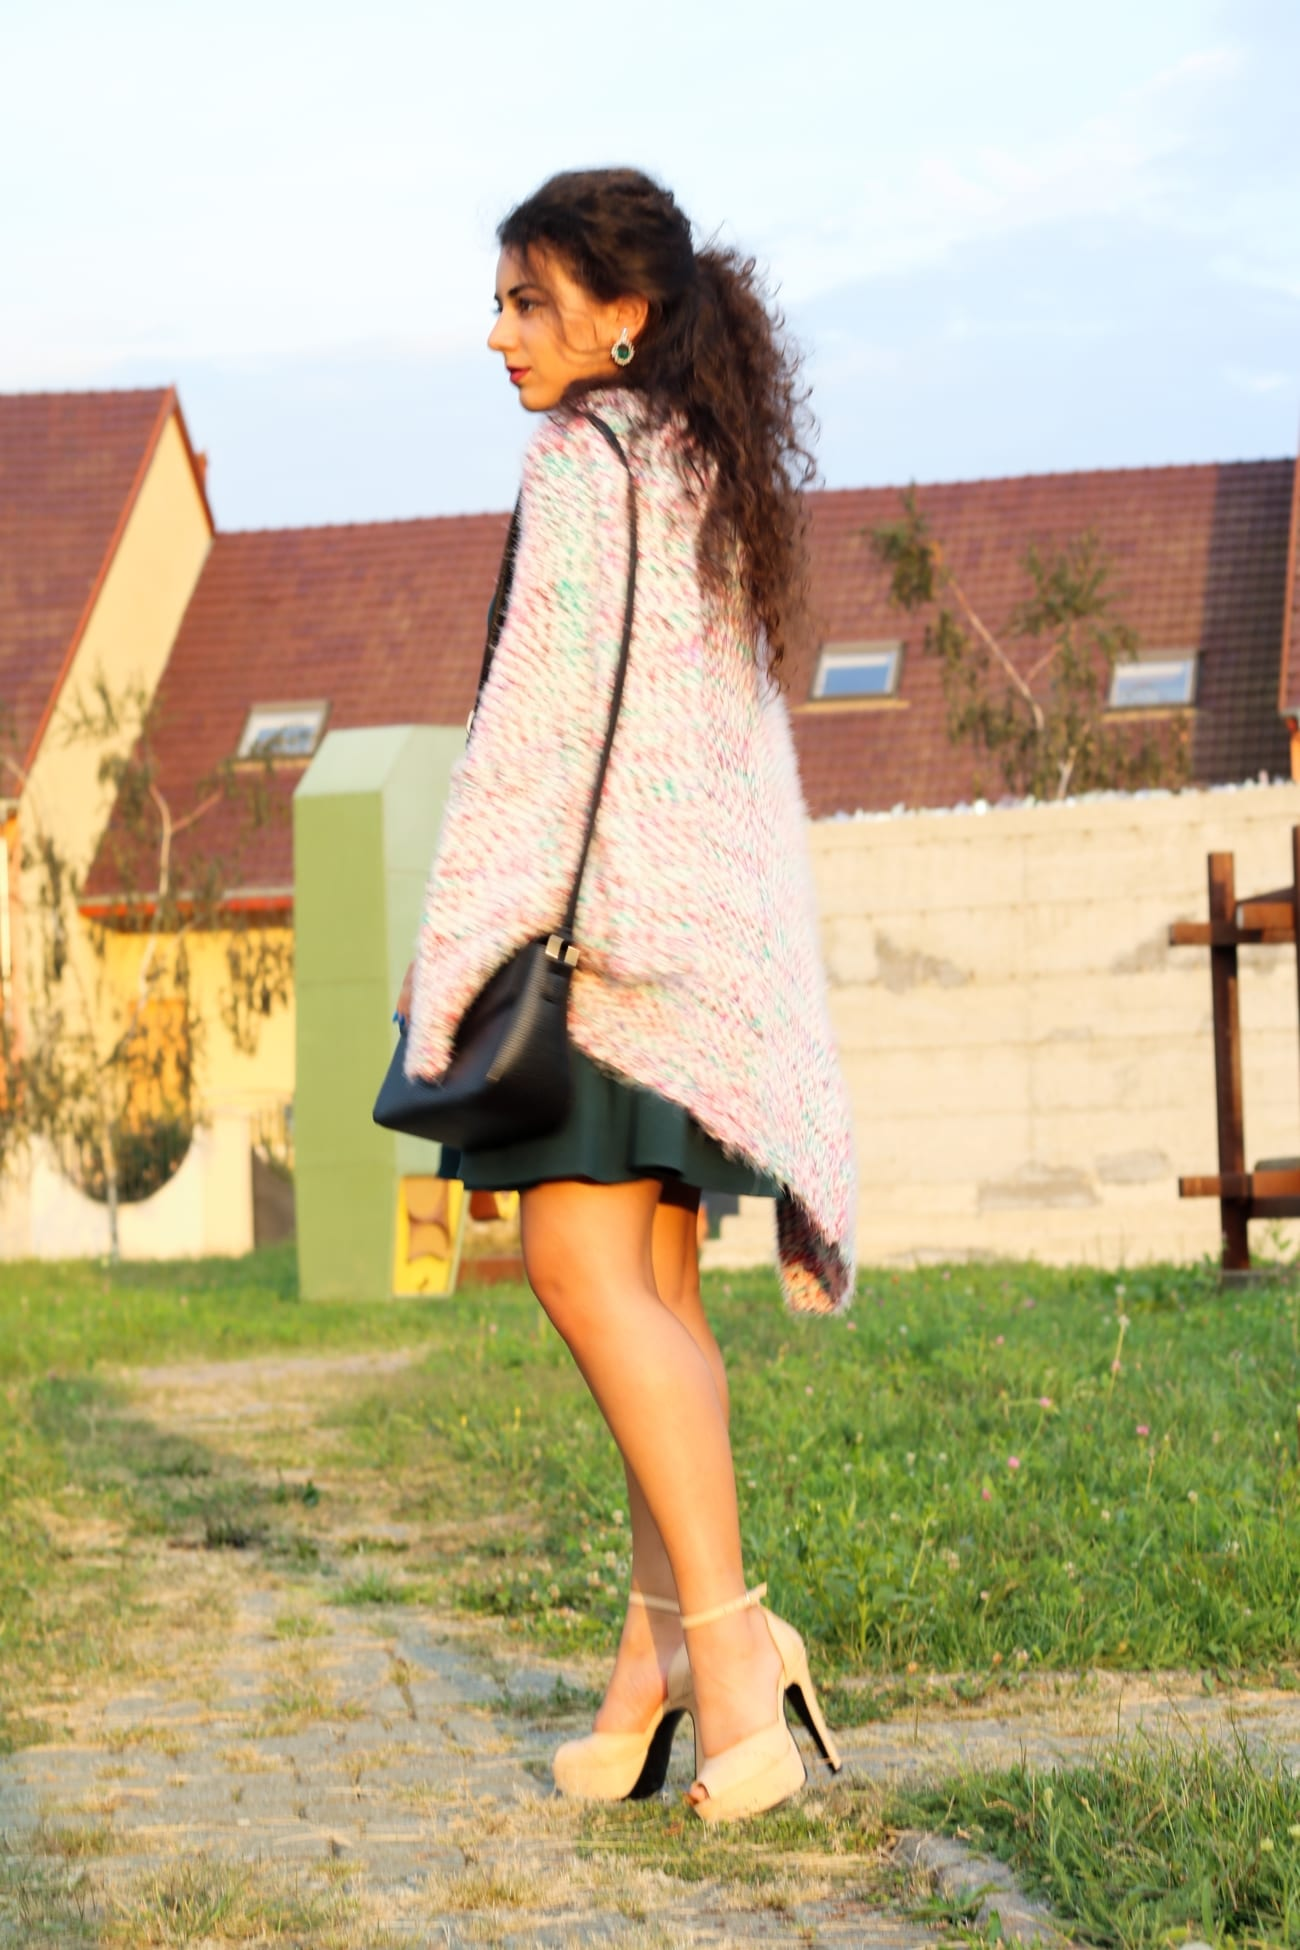 reserved-timis-roxi-rose-fashion-blogger-romania-shopping-city-timisoara-concurs-back-to-office-outfit-transitional-idei-news-stiri-26